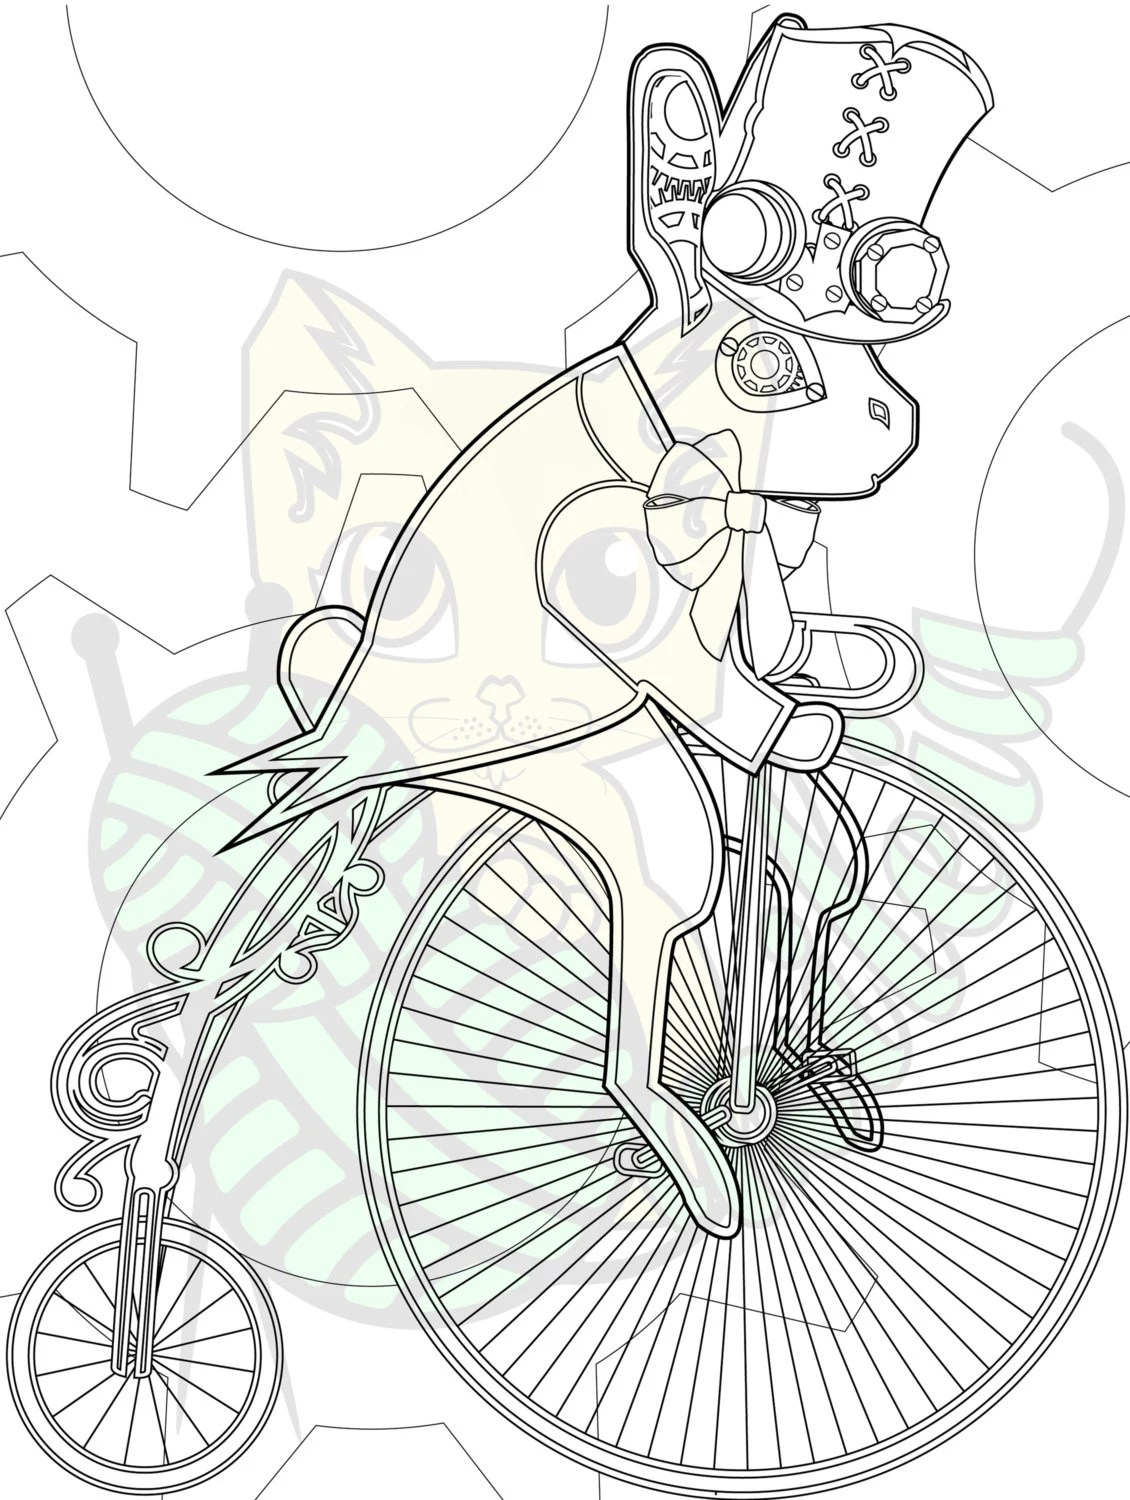 Steampunk victorian bunny on bike 8x10 inch coloring sheet